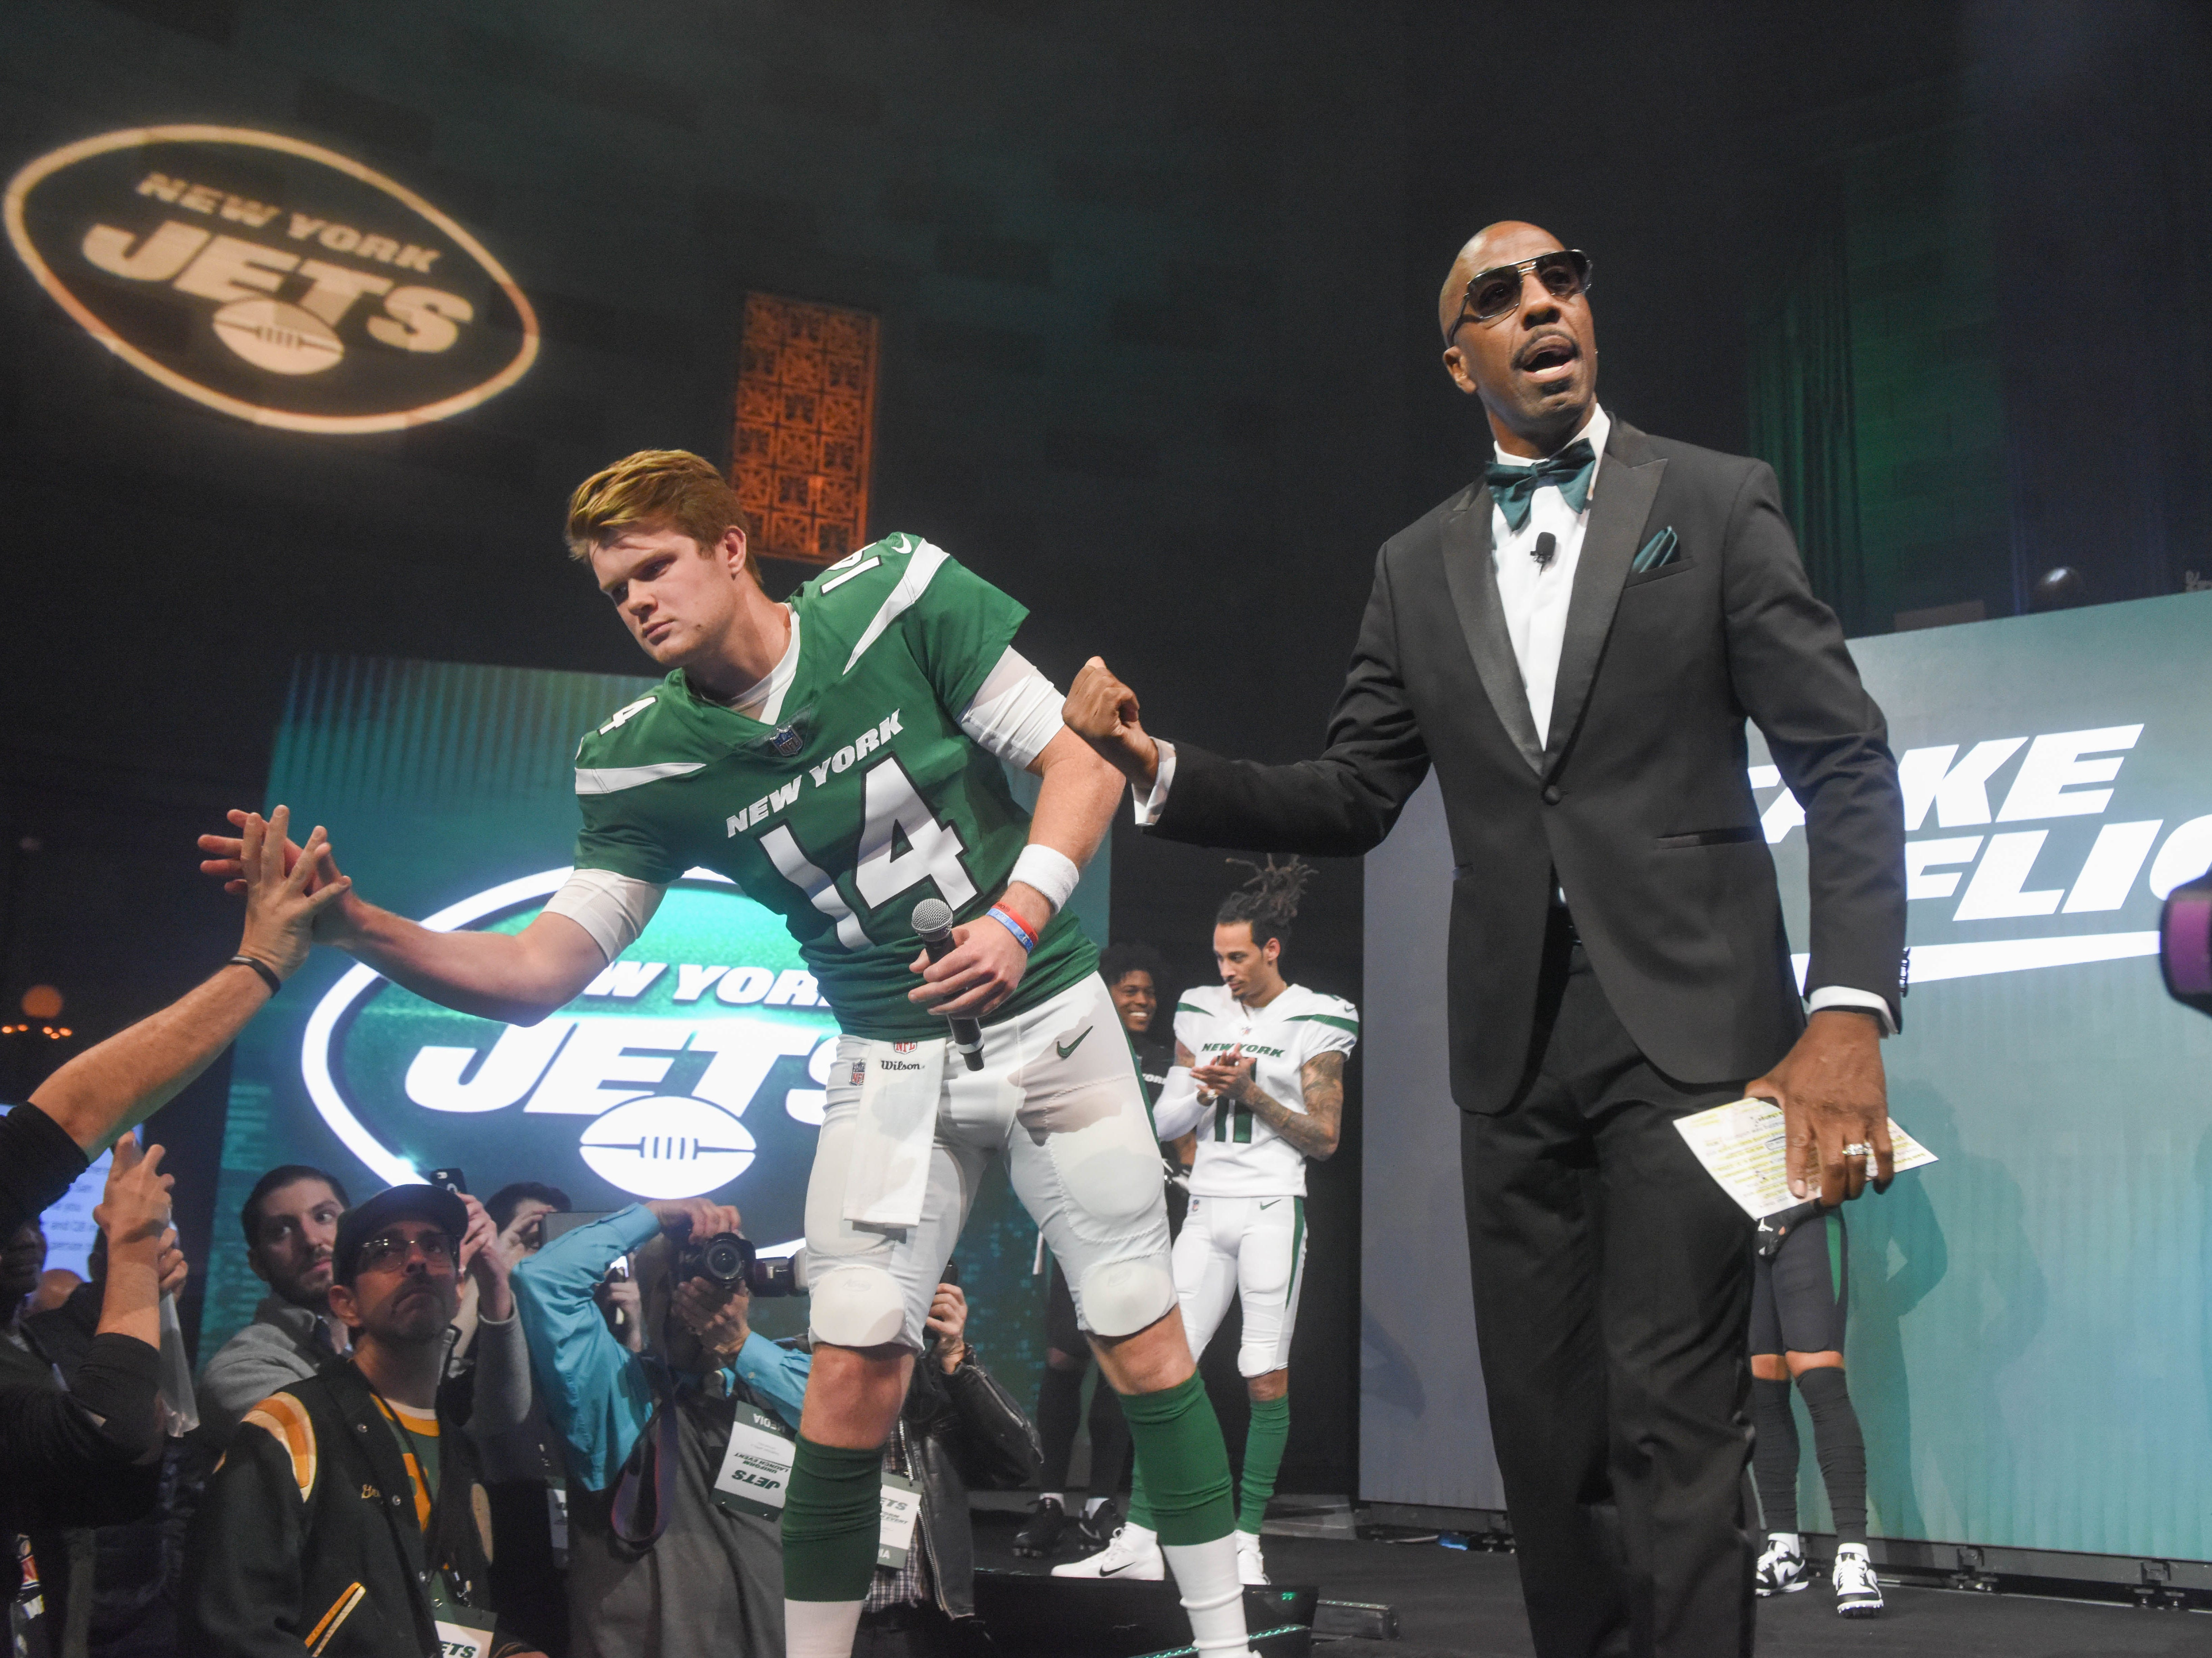 Sam Darnold (NY Jets) and J. B. Smoove (Comedian/Event Host). The NY Jets unveiled their new football uniforms with an event hosted by JB Smoove at Gotham Hall in New York. 04/05/2019